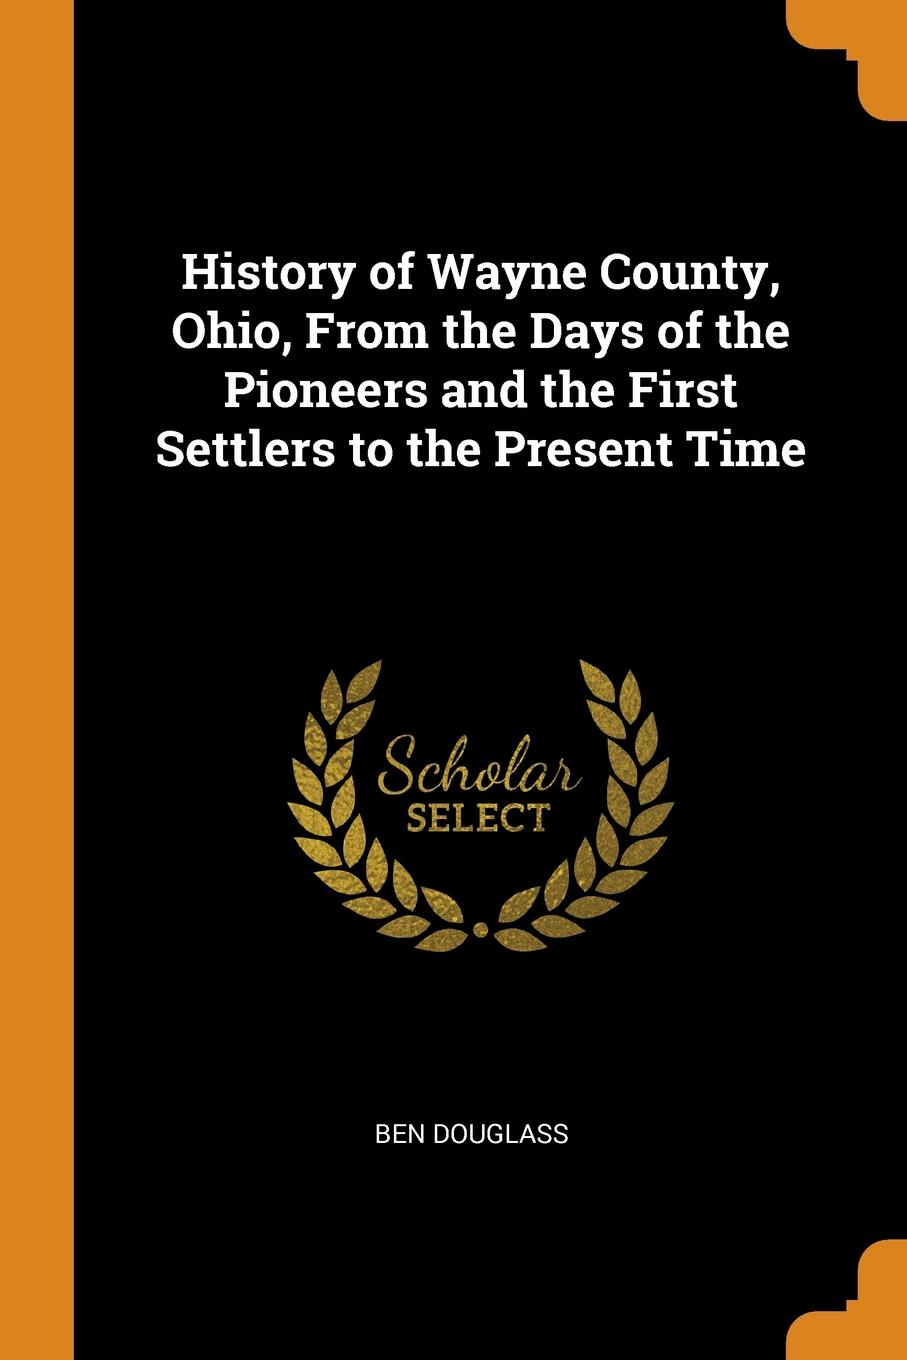 Ben Douglass History of Wayne County, Ohio, From the Days of the Pioneers and the First Settlers to the Present Time